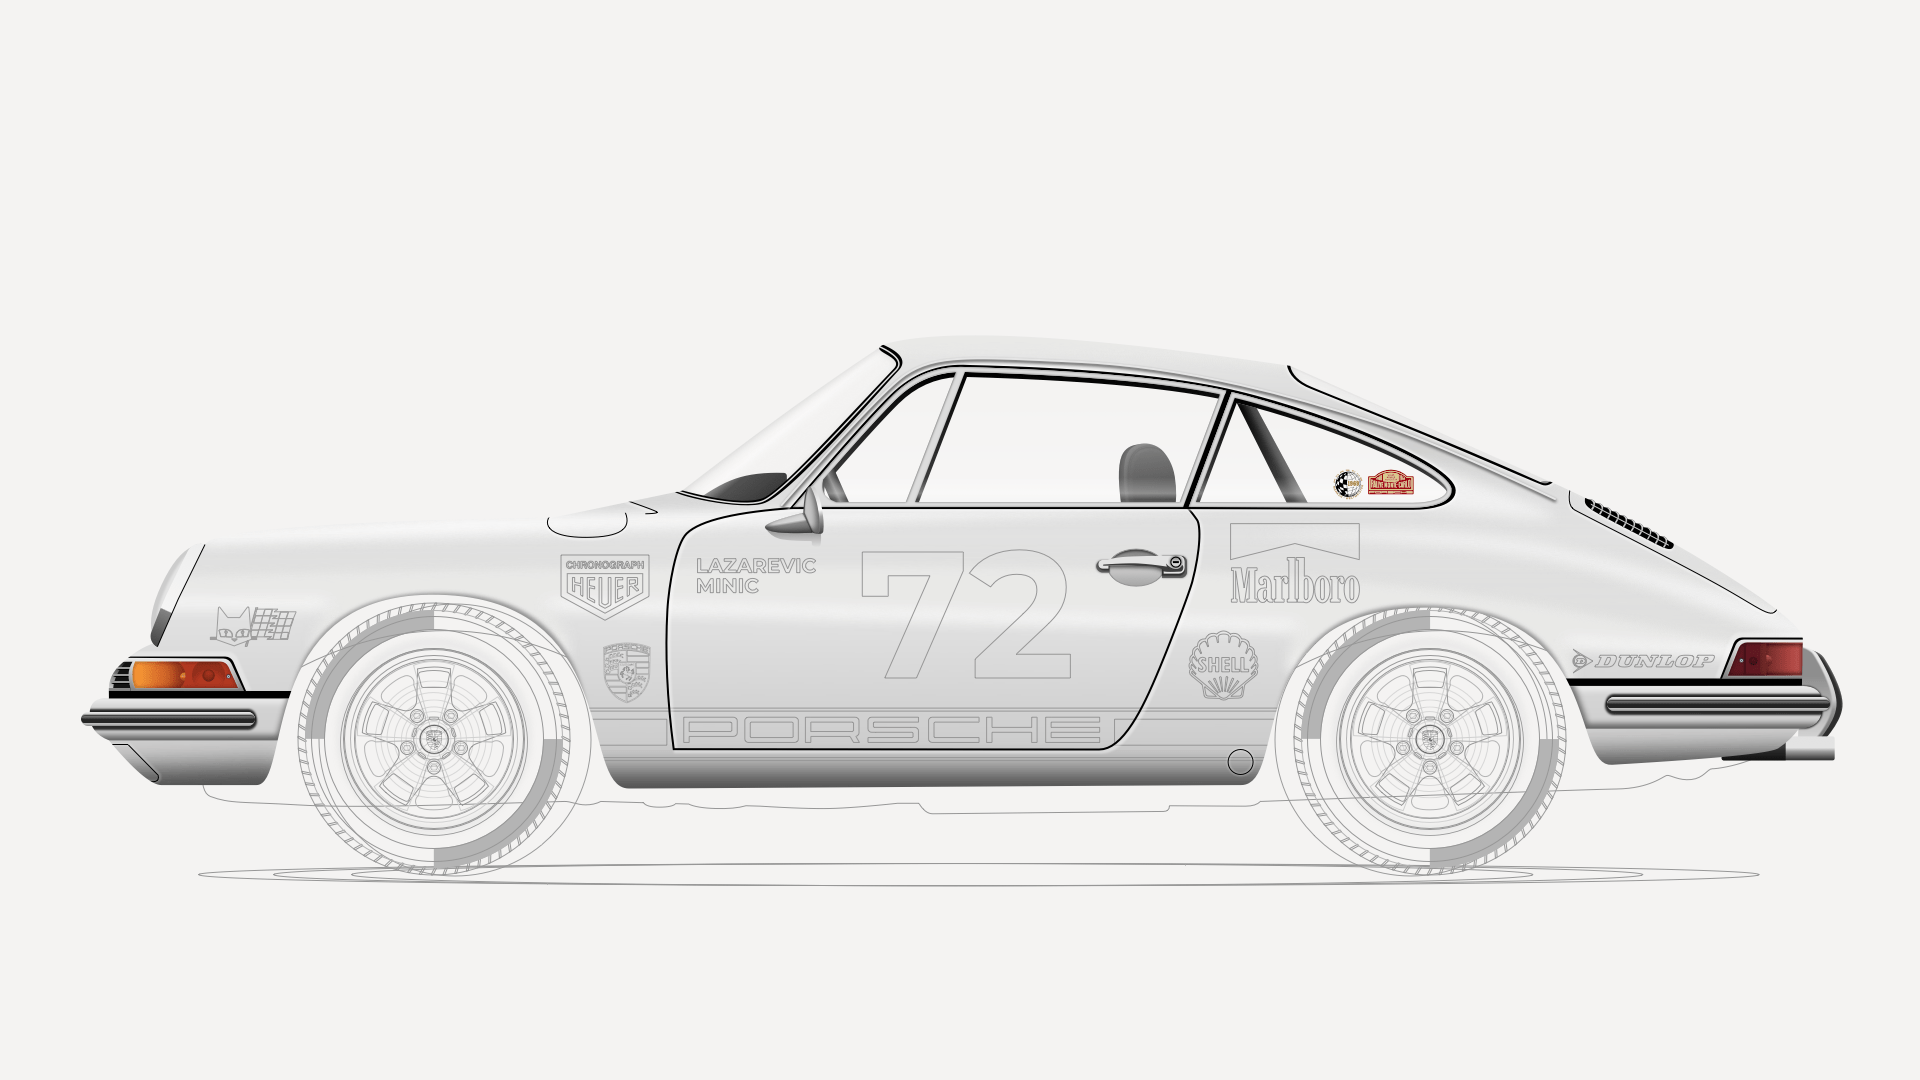 An in-progress illustration of a 1969 Porsche 911, created in Sketch.